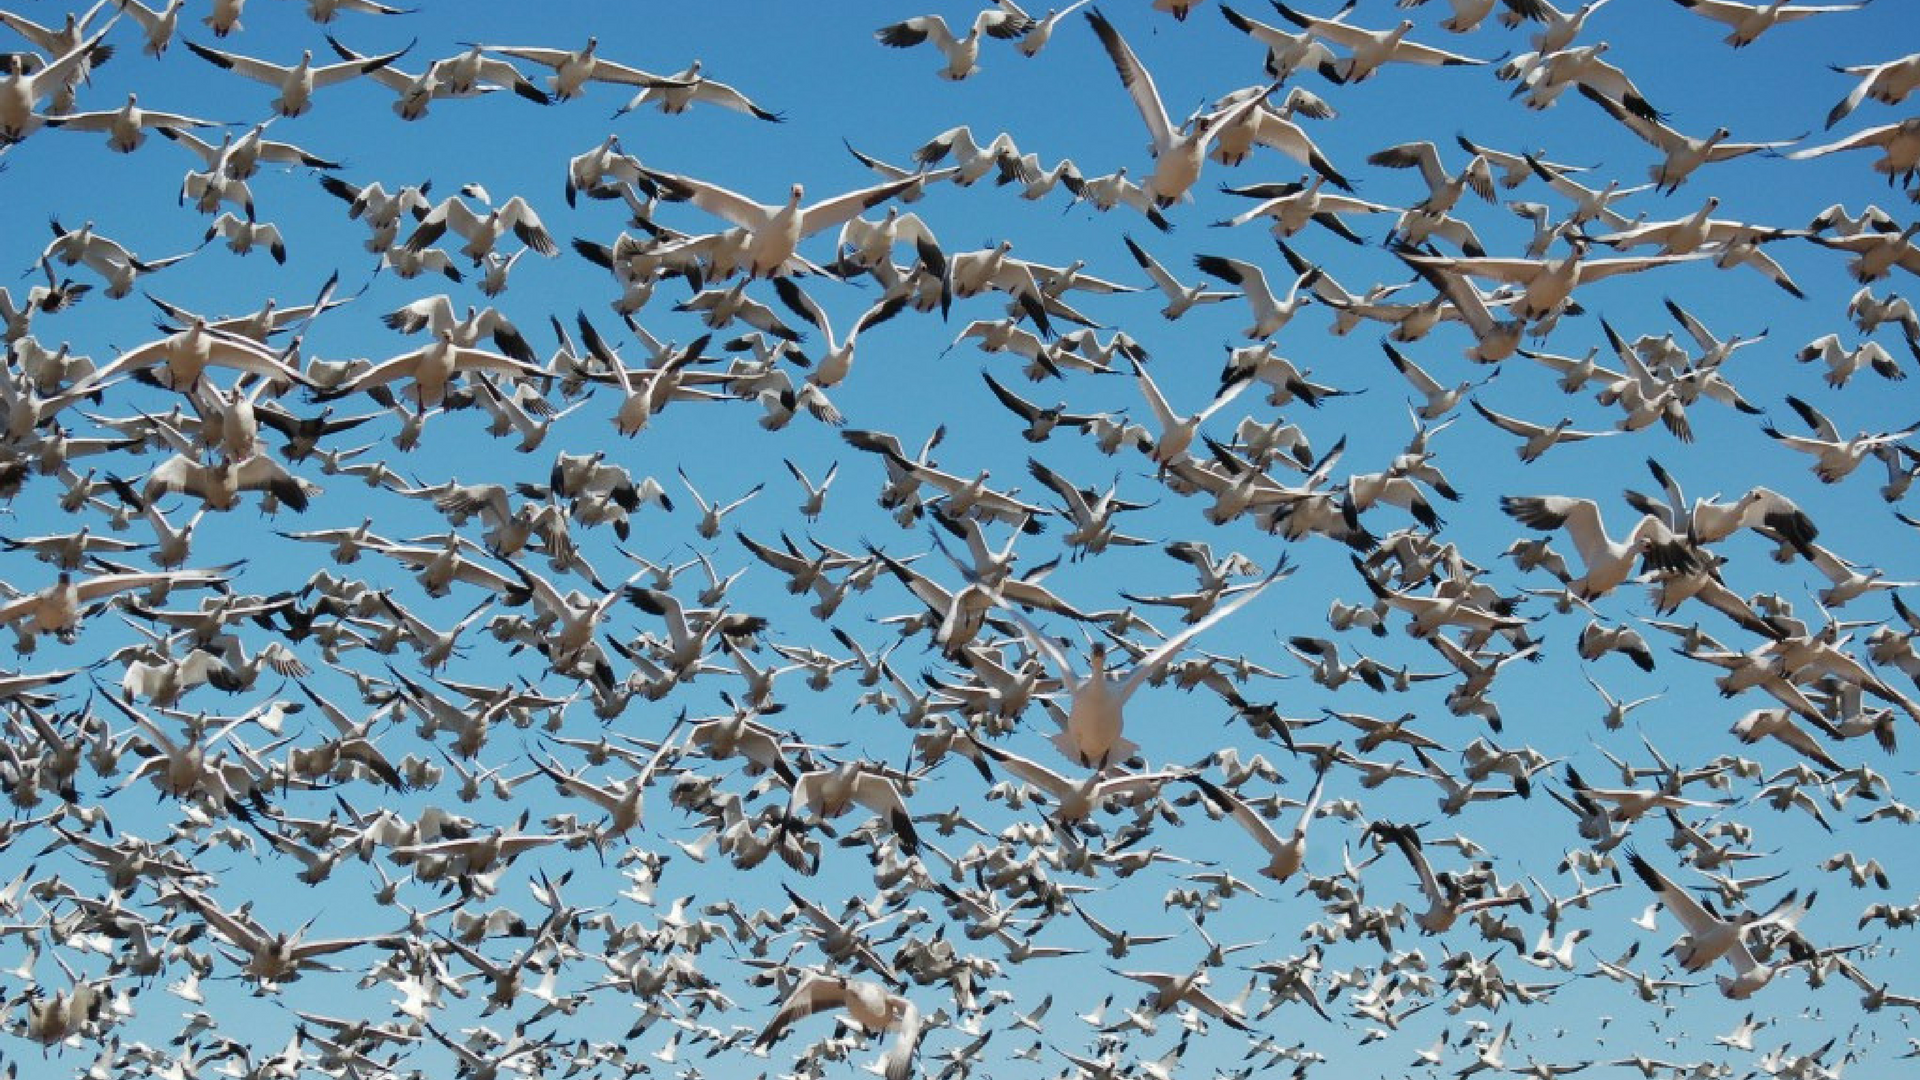 Why Geese Are A Bigger Threat To Planes Than Drones